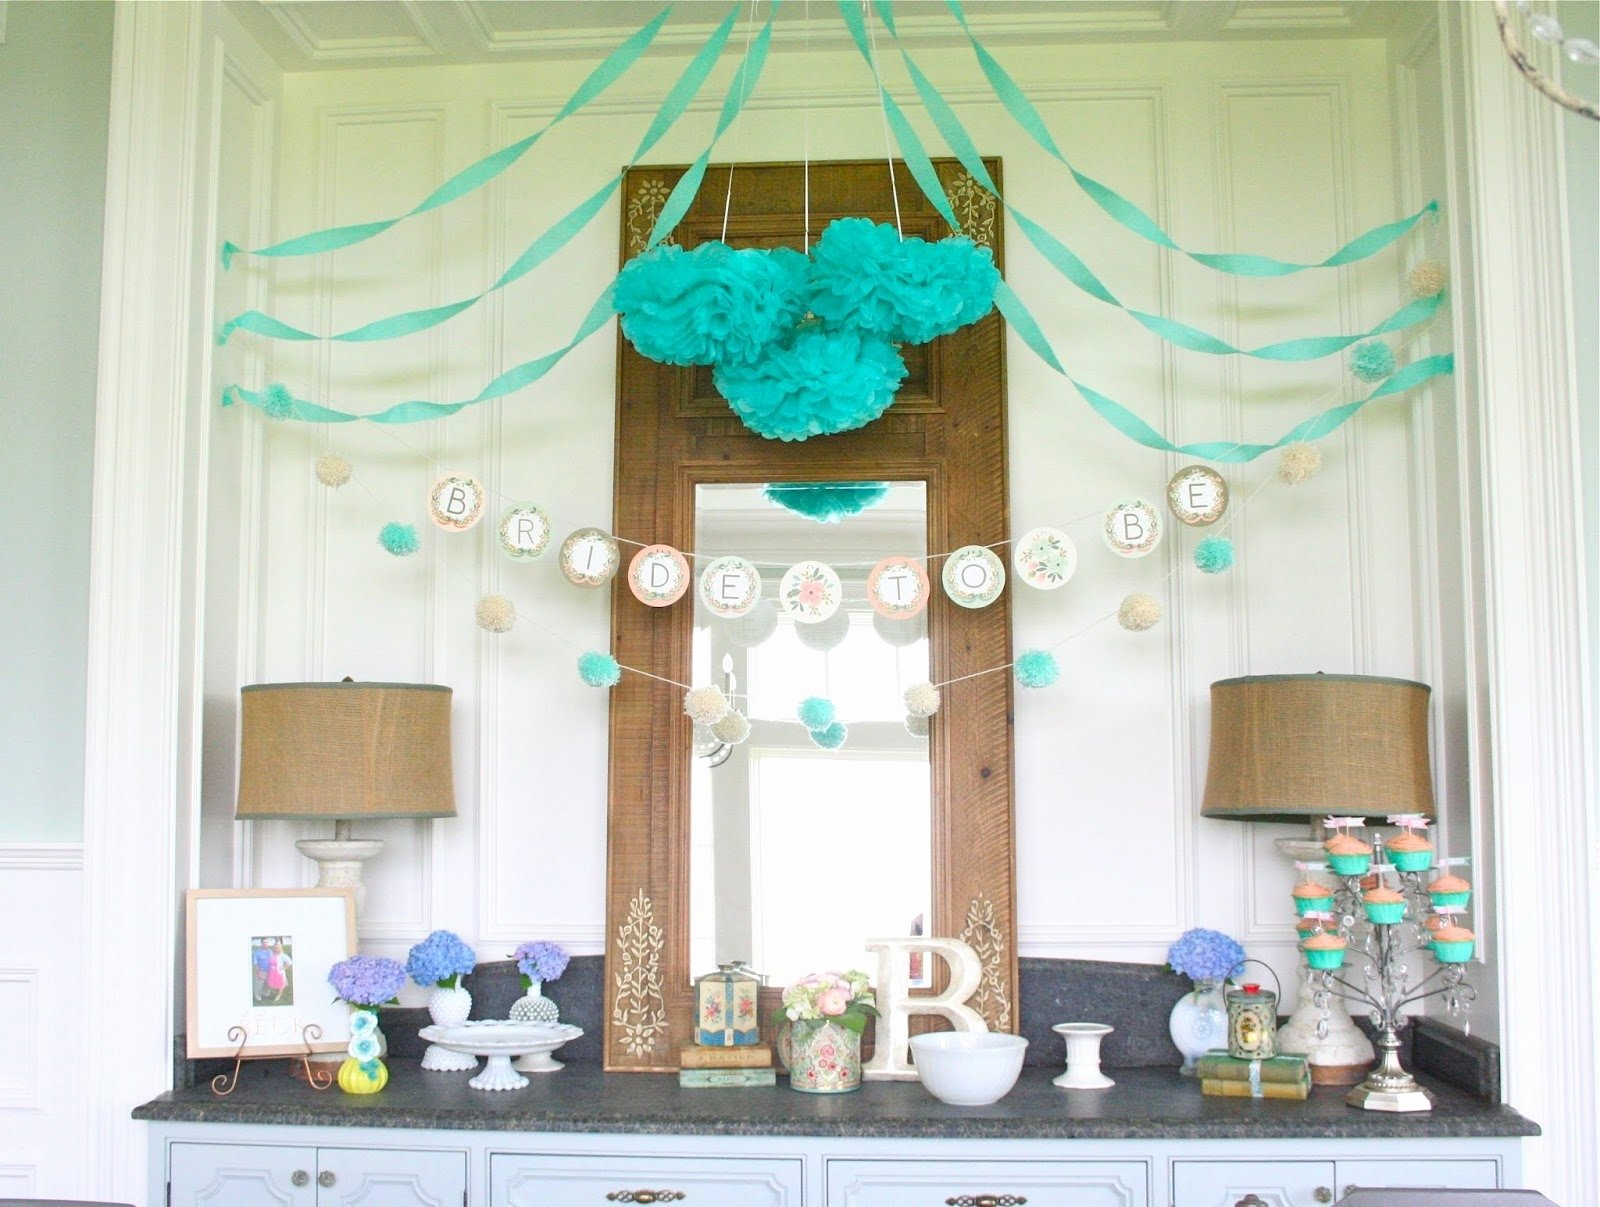 10 Stunning Decorating Ideas For Bridal Shower 50 beautiful stock cheap bridal shower decorations ideas bridal